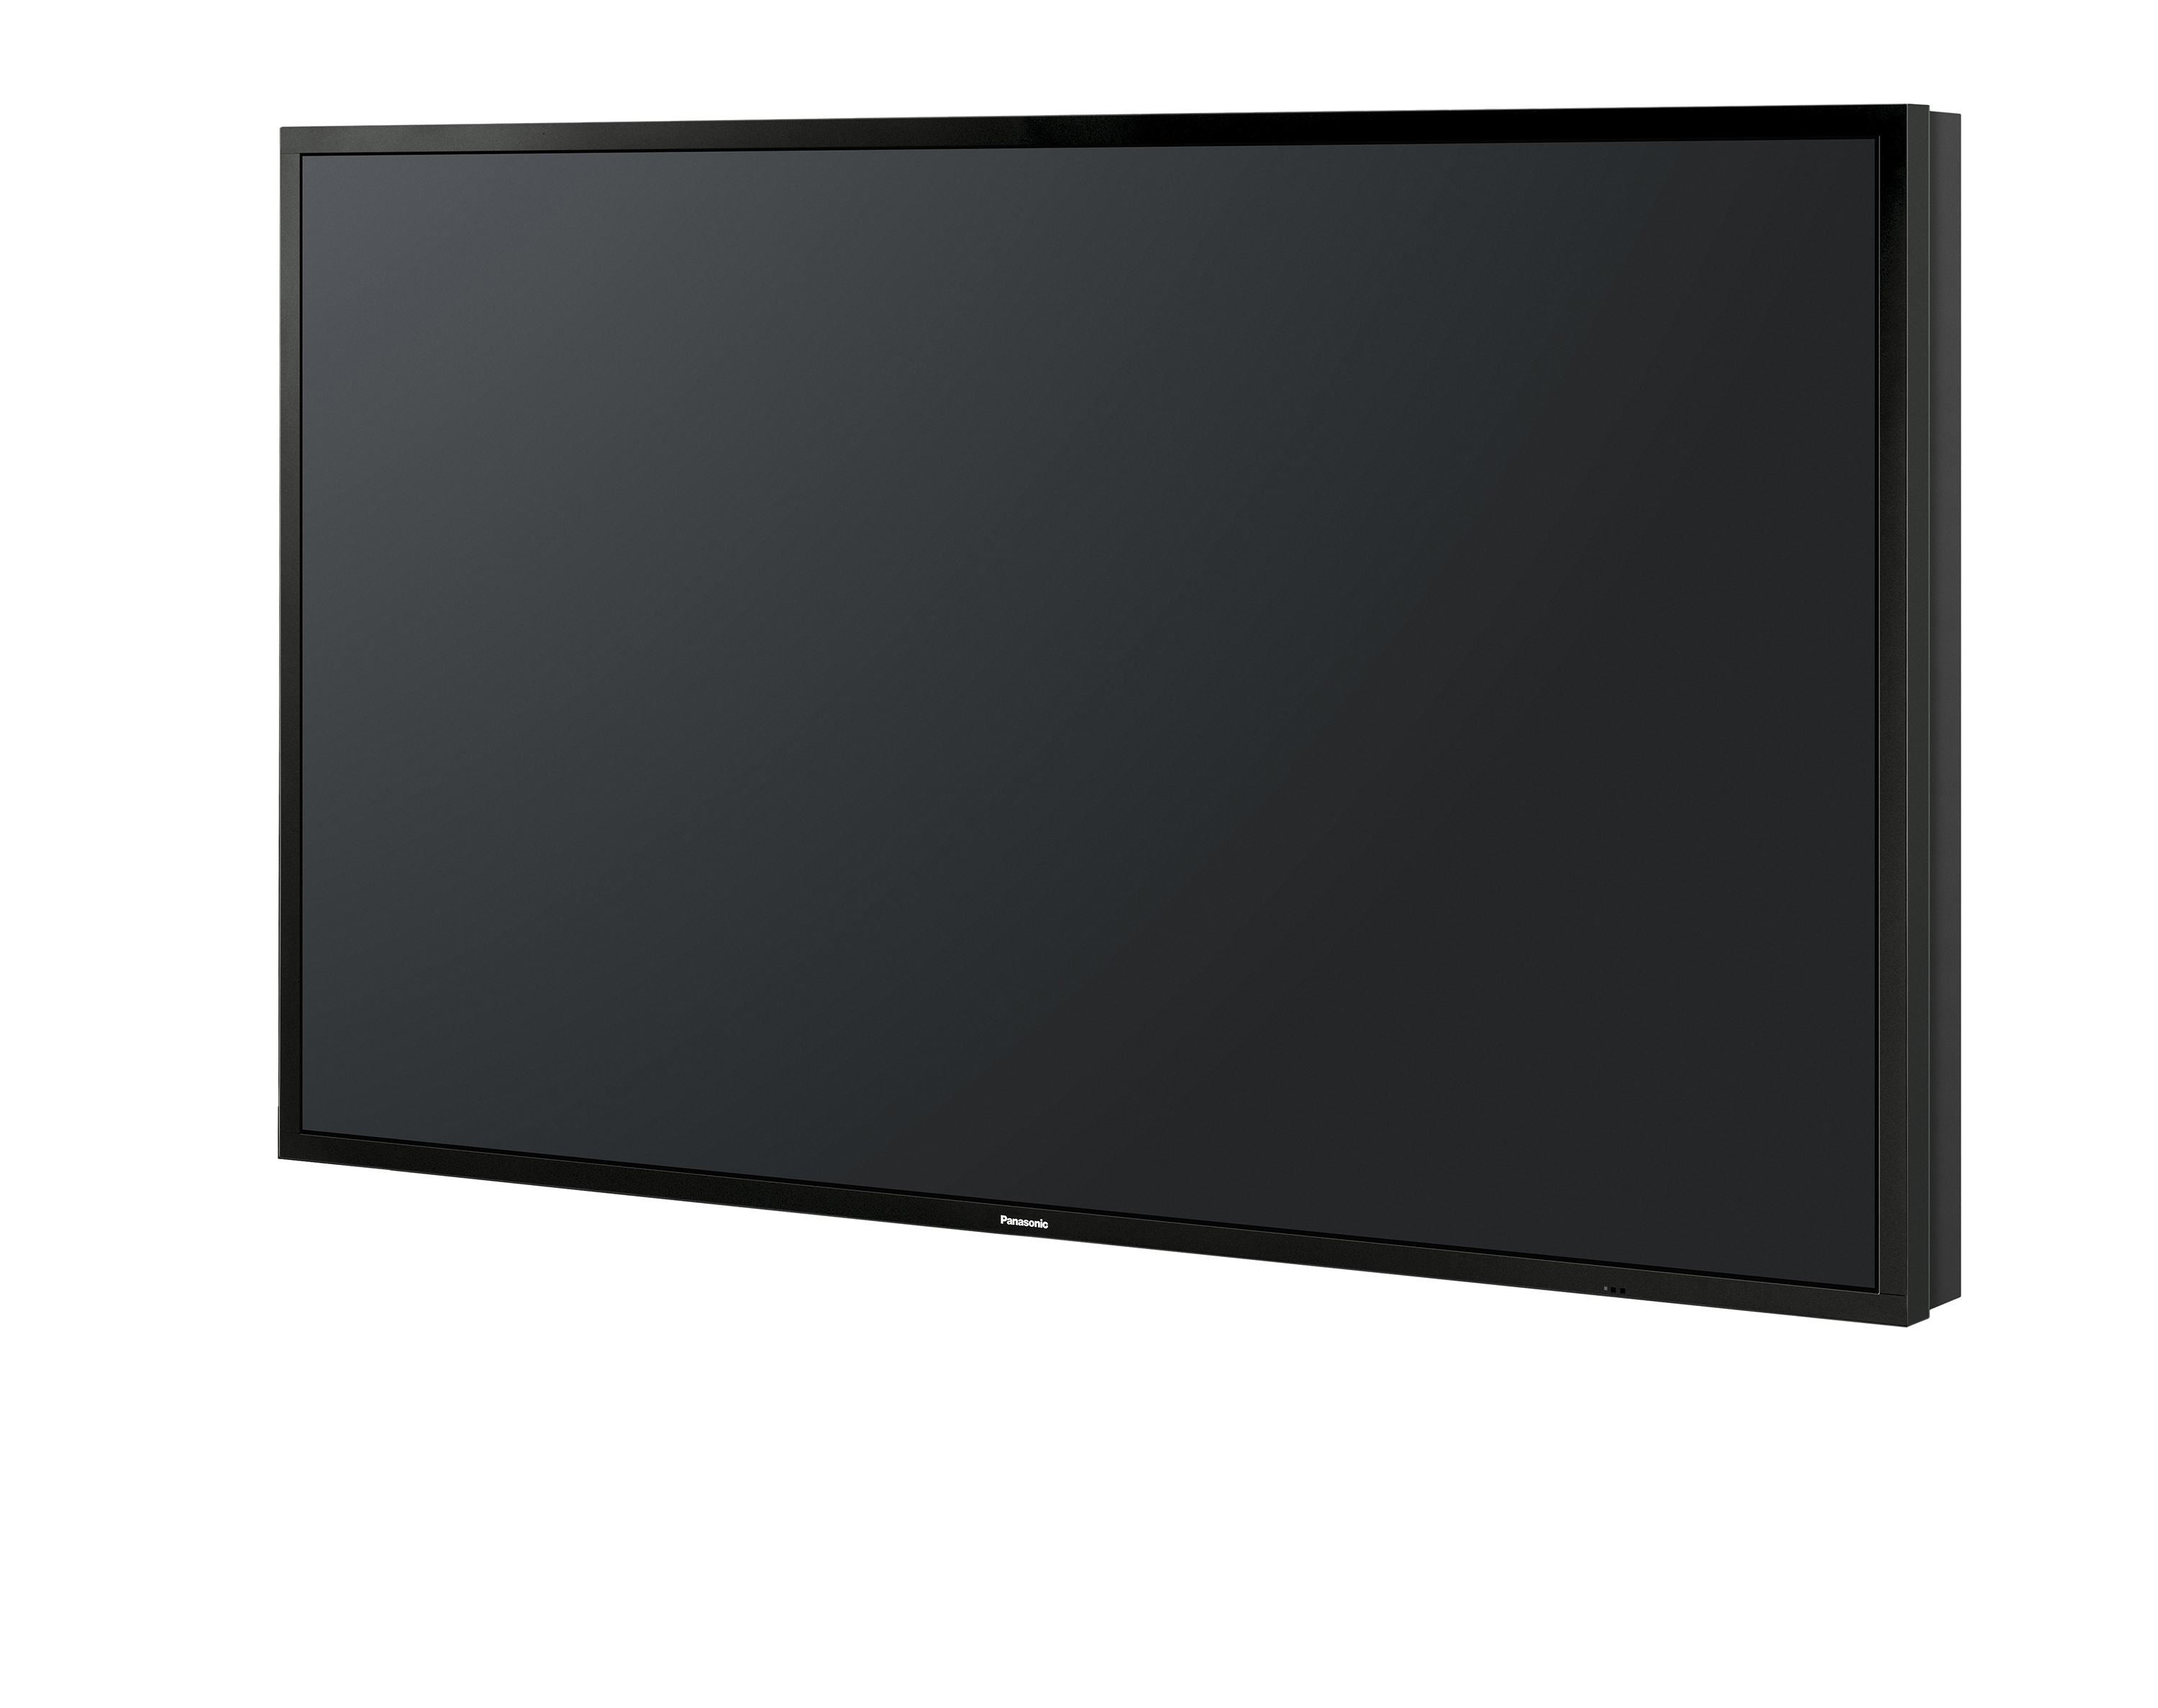 Panasonic TH-98LQ70W Professional 4K Large Display